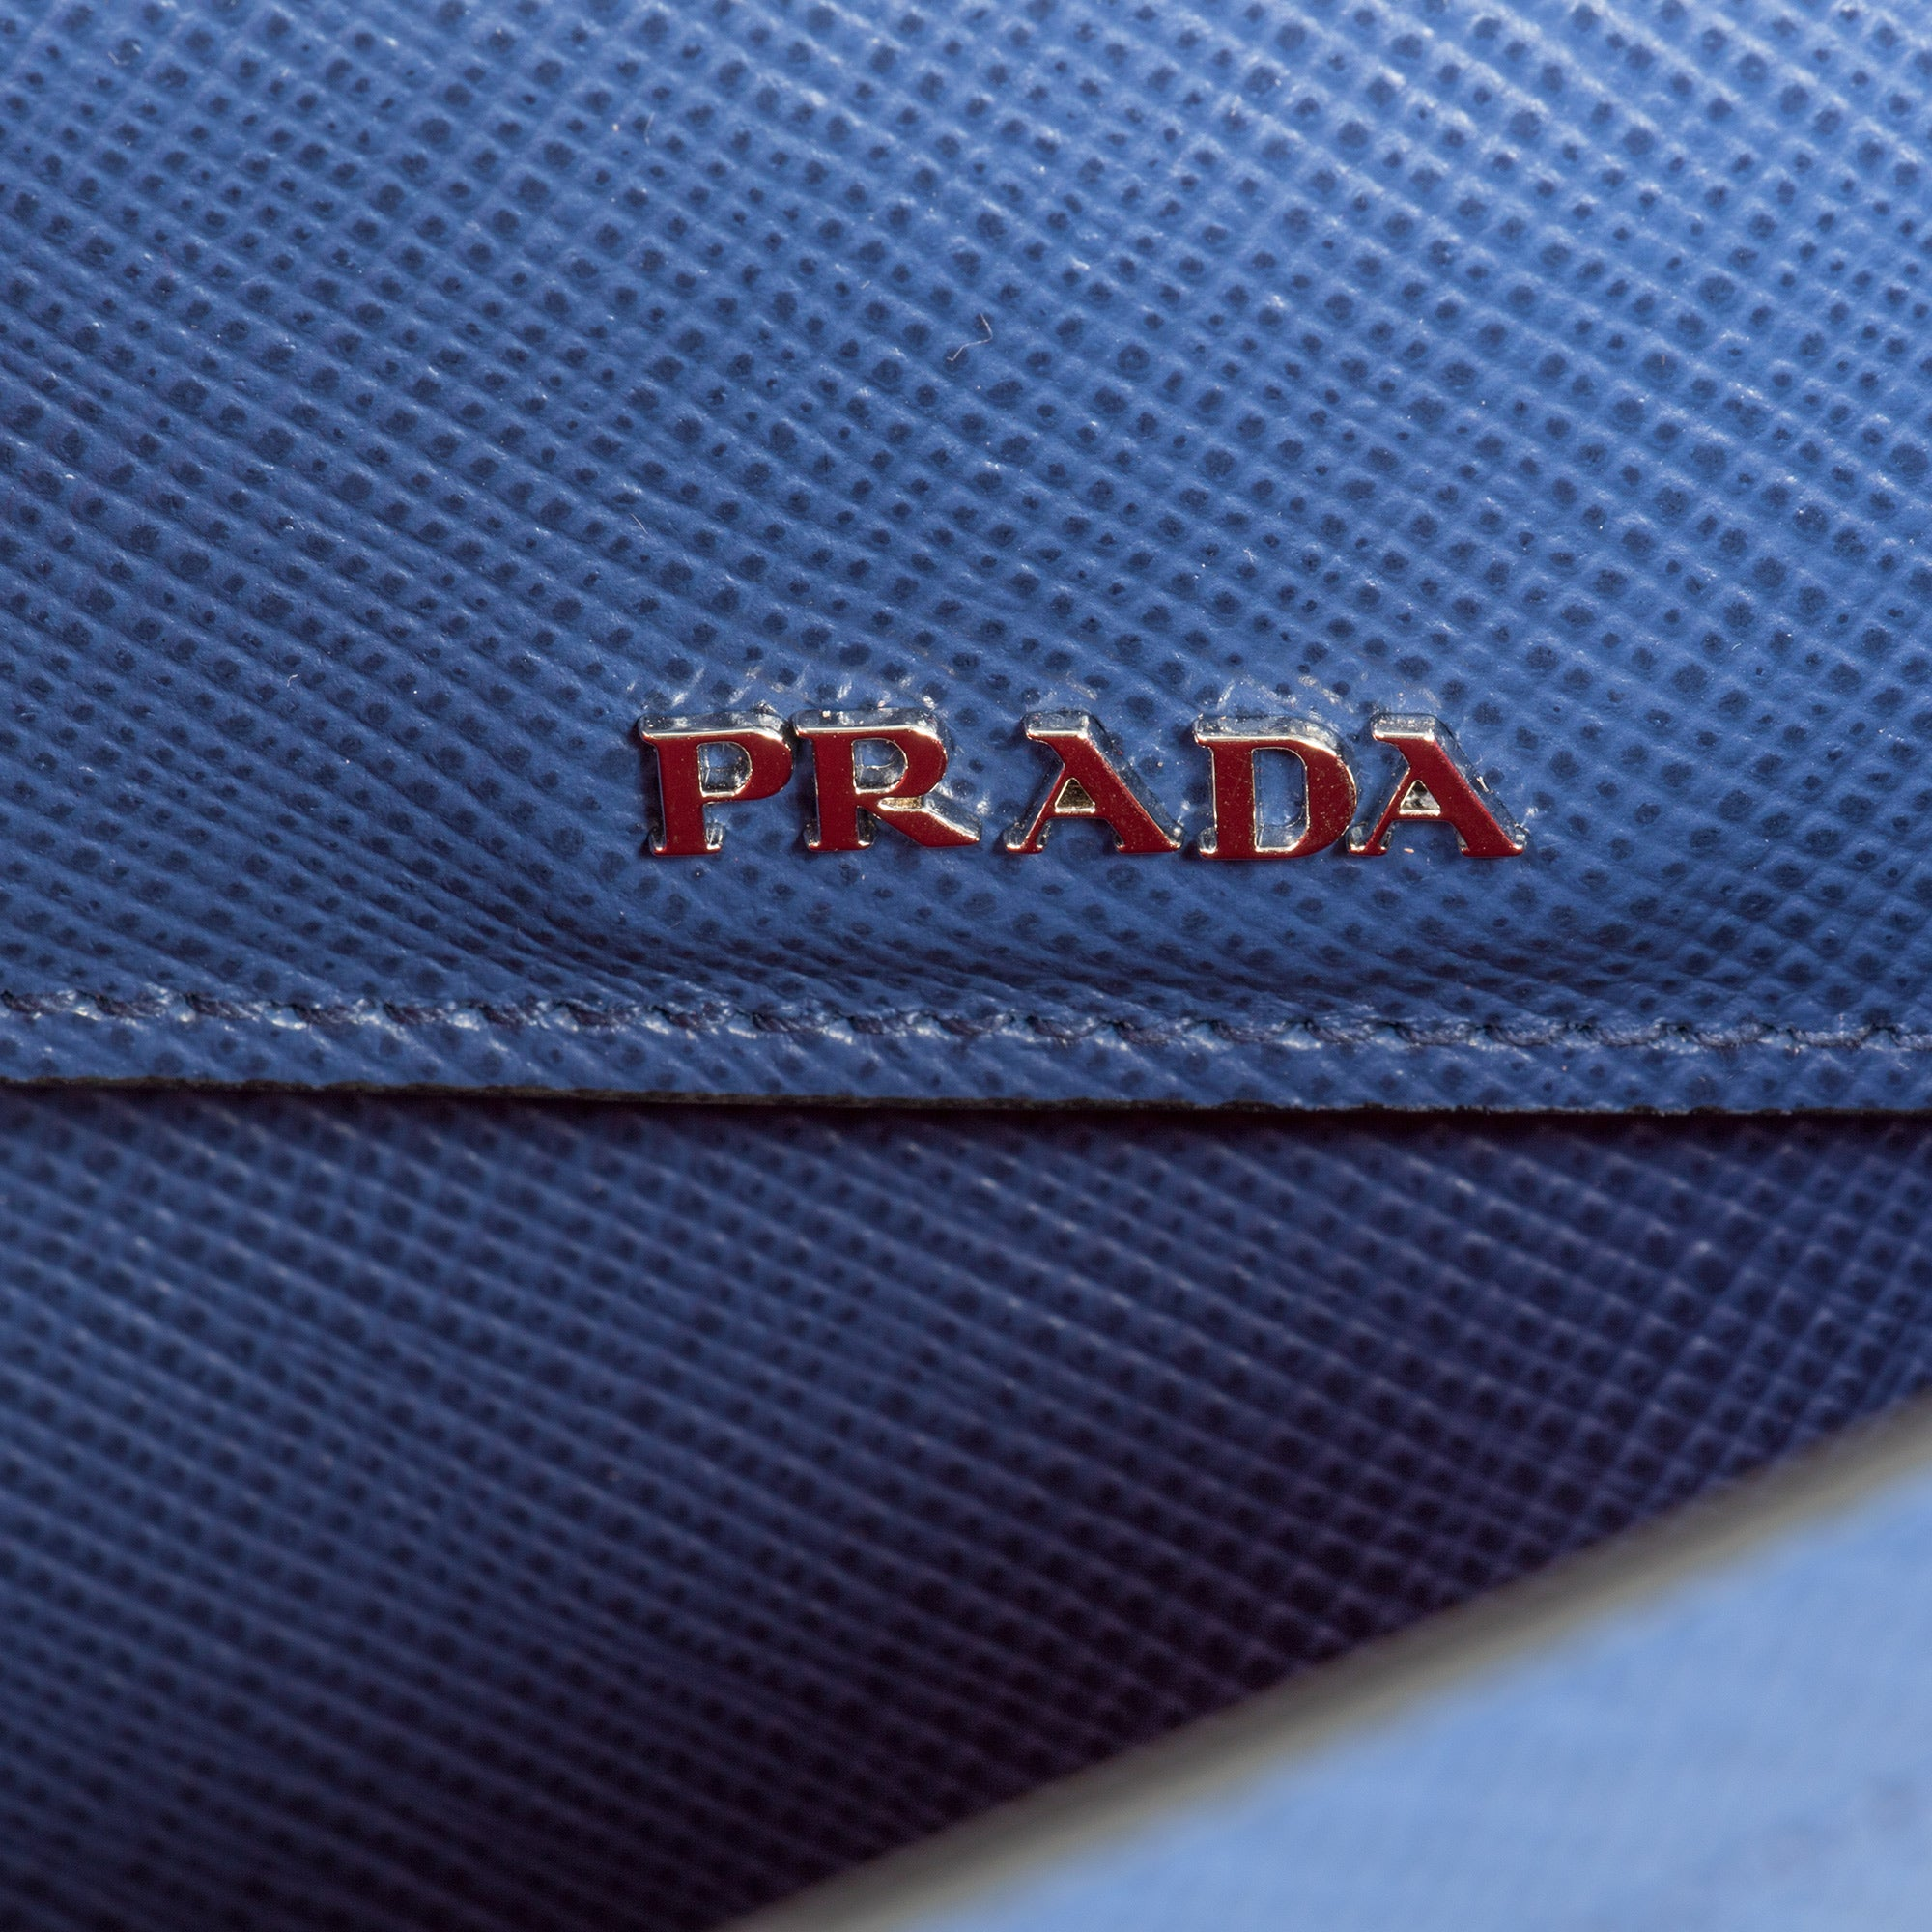 Prada Double Tote Leather Bag 1BG883 F0021 | Inchiostro/Ink Blue | Small